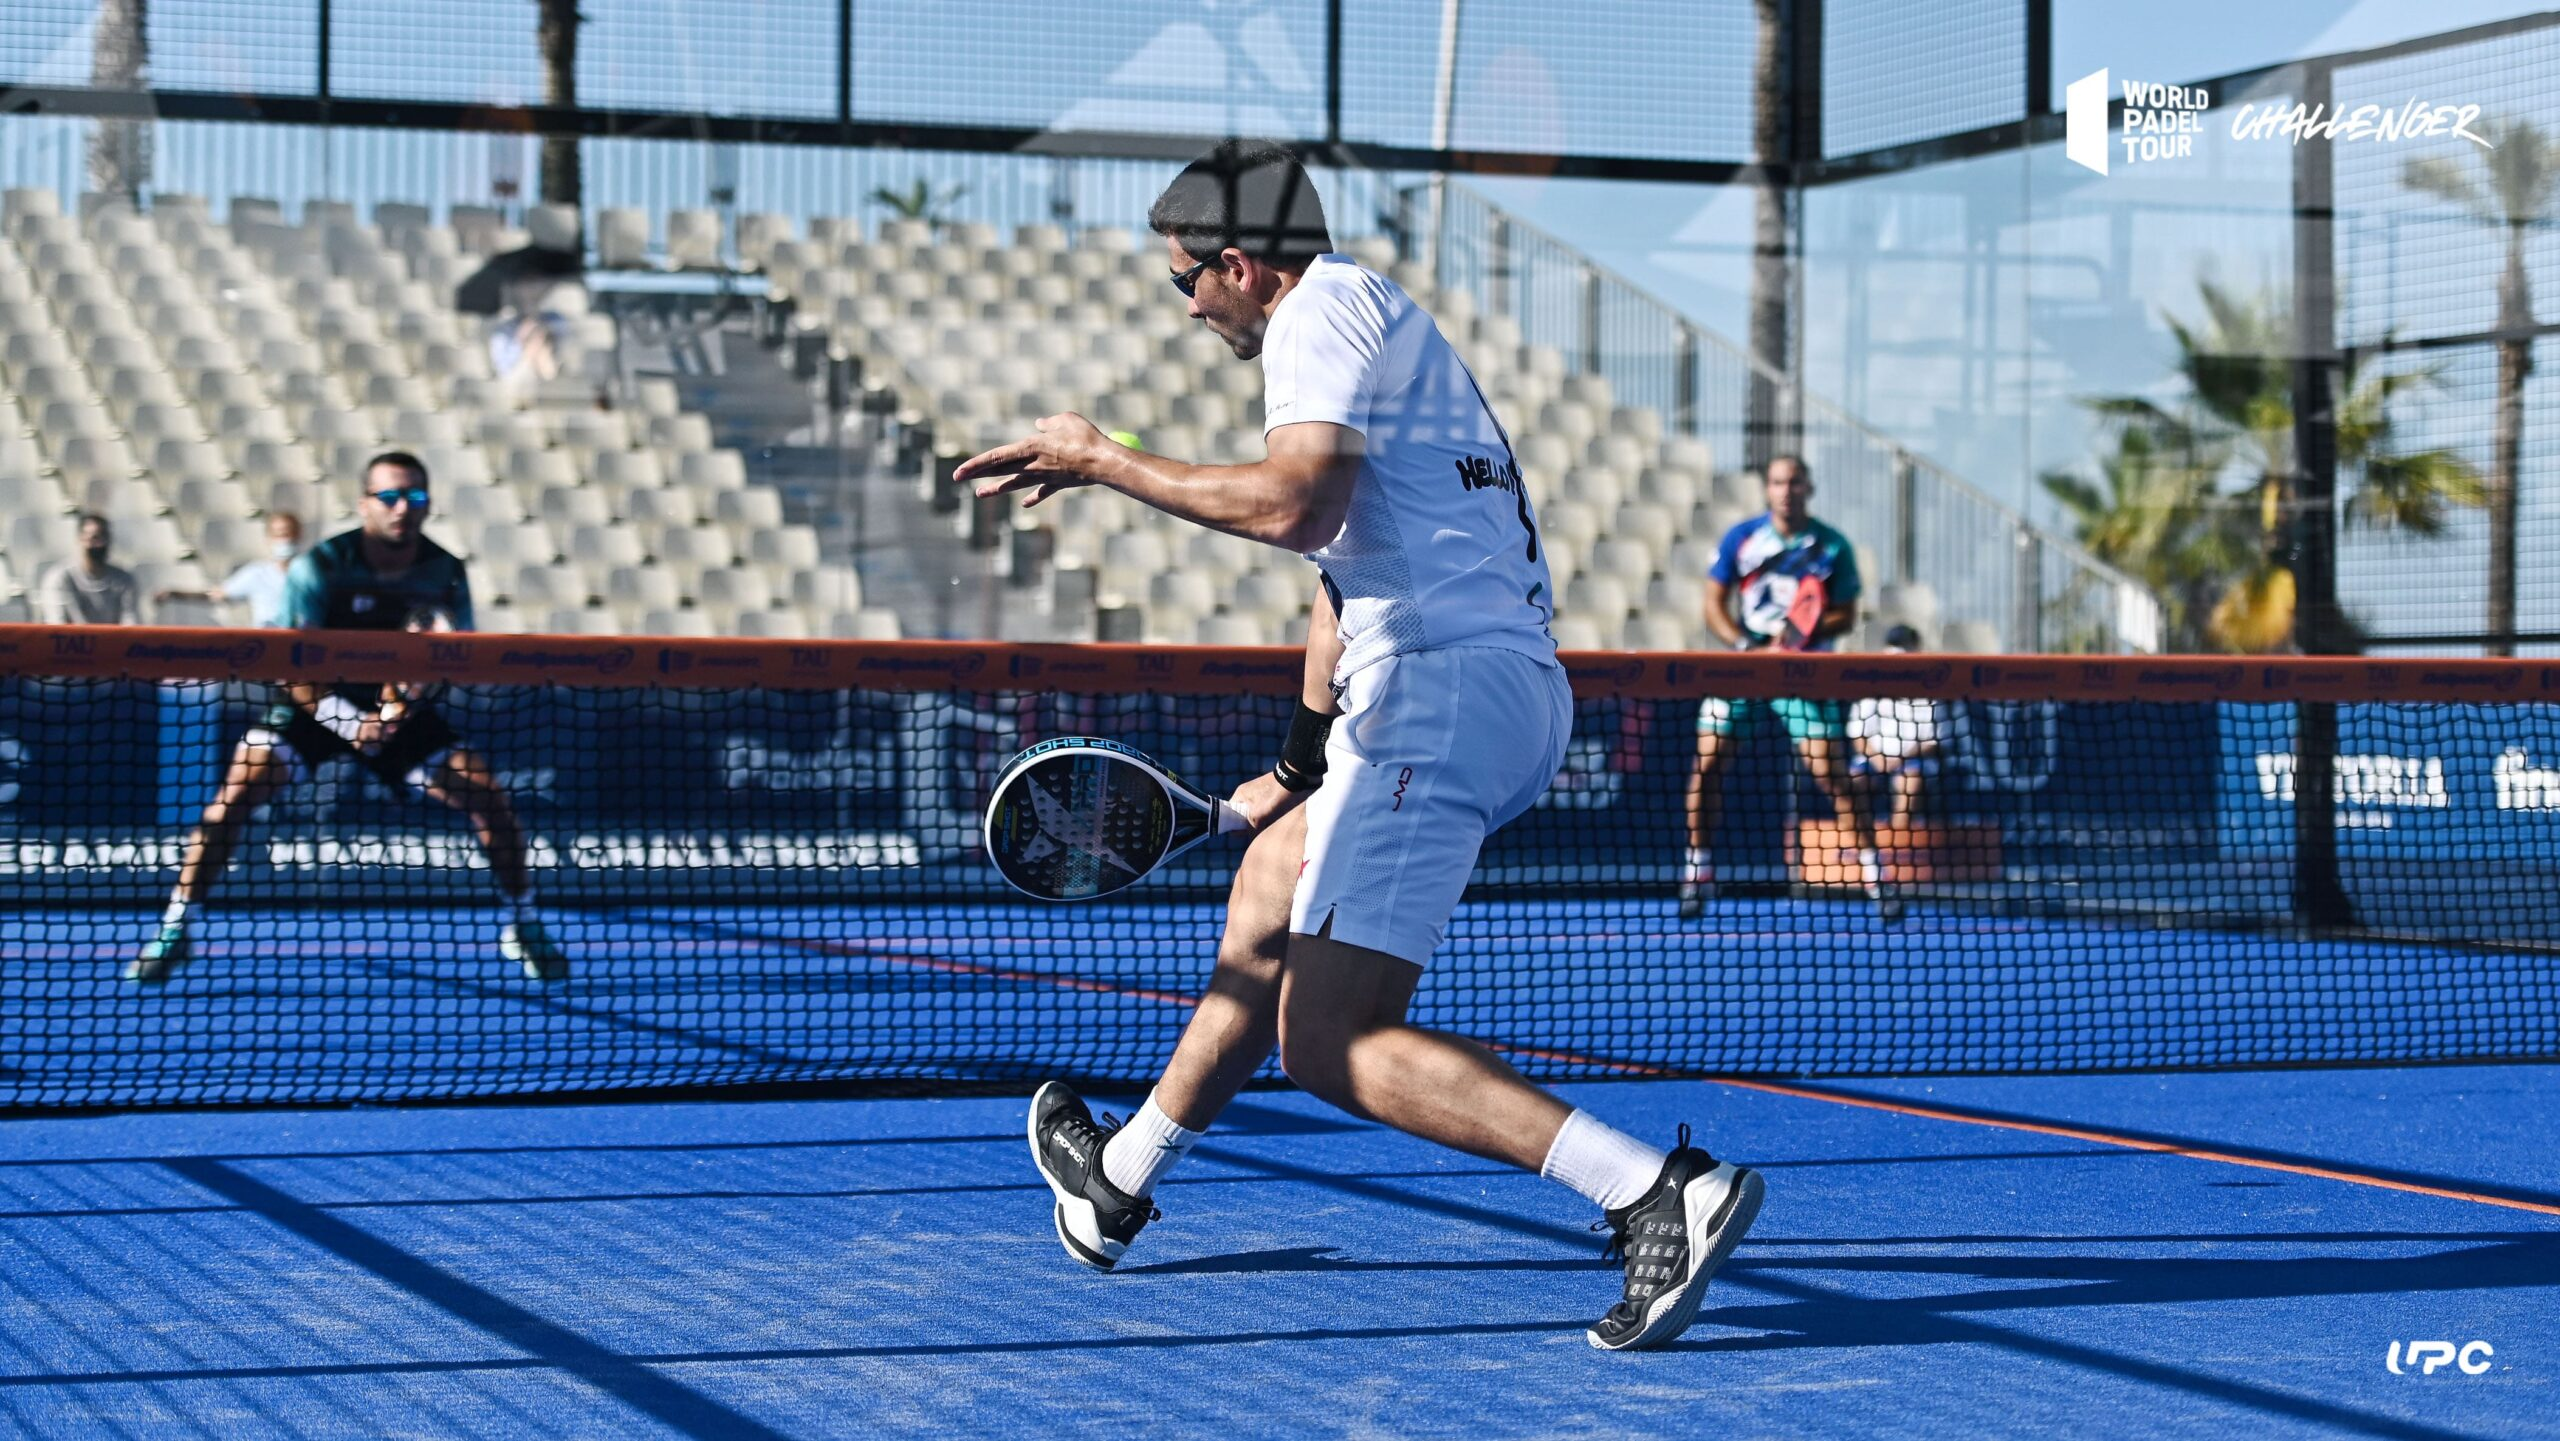 LUCAS_CAMPAGNOLO_1/8_final_masculino_tauceremica_marbella_challenger